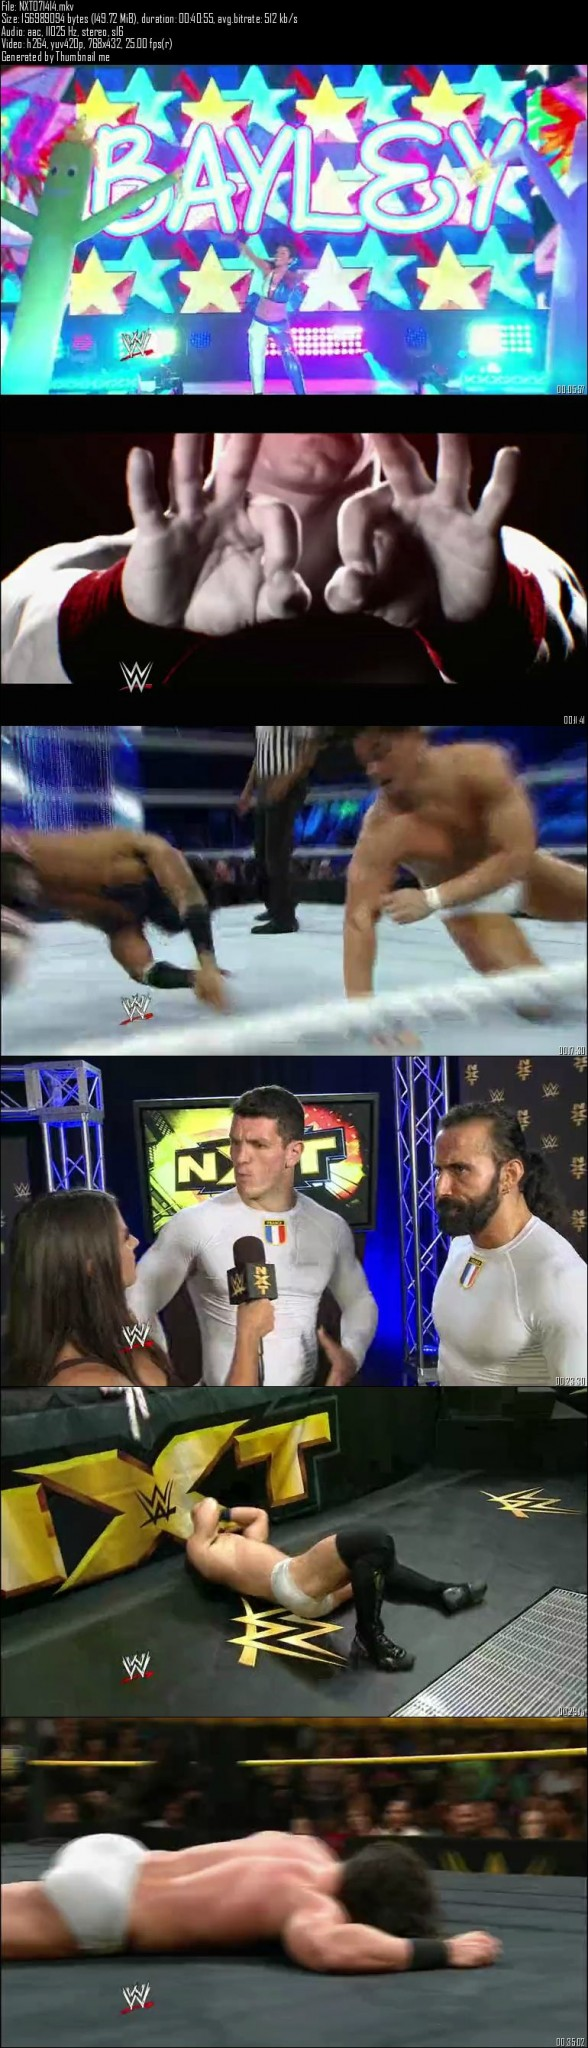 WWE NXT 14th August 2014